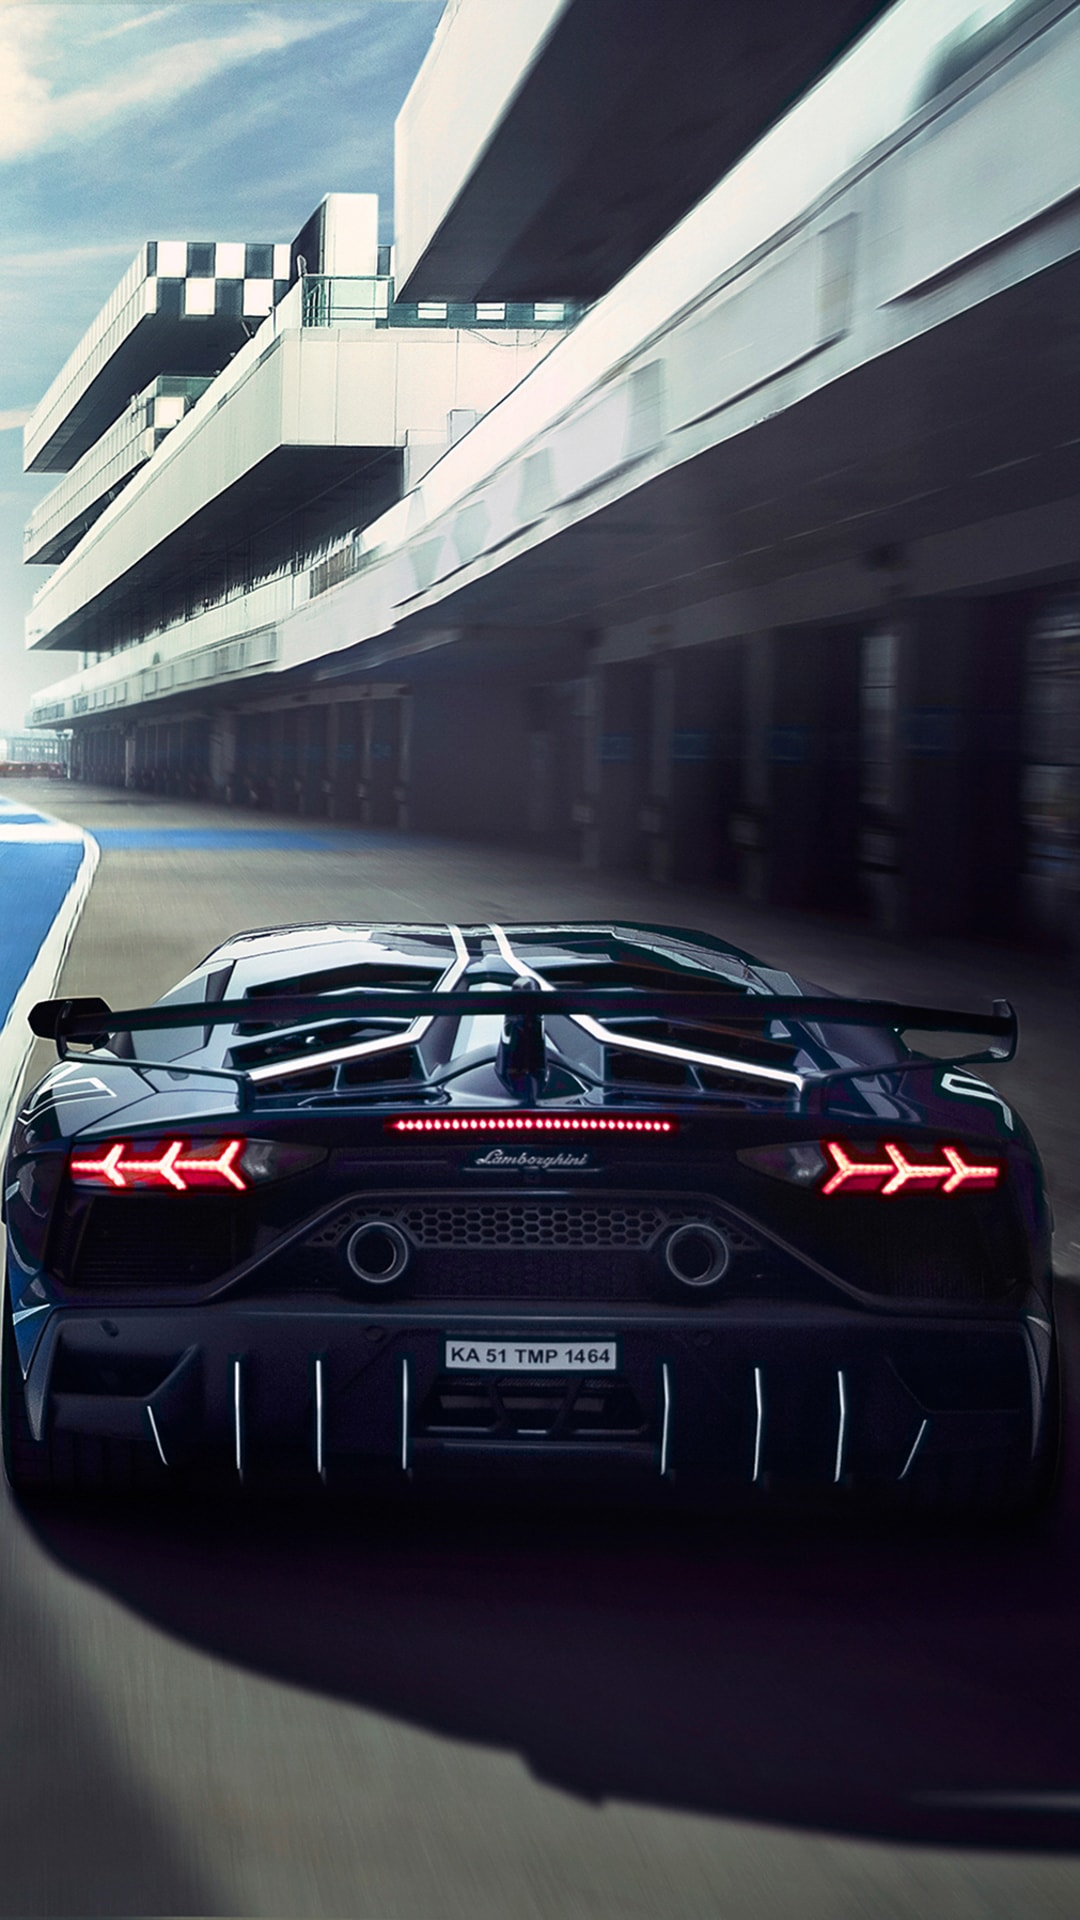 Lamborghini Aventardor Svj 4k Lamborghini Aventador Wallpaper 4k Iphone 1080x1920 Download Hd Wallpaper Wallpapertip